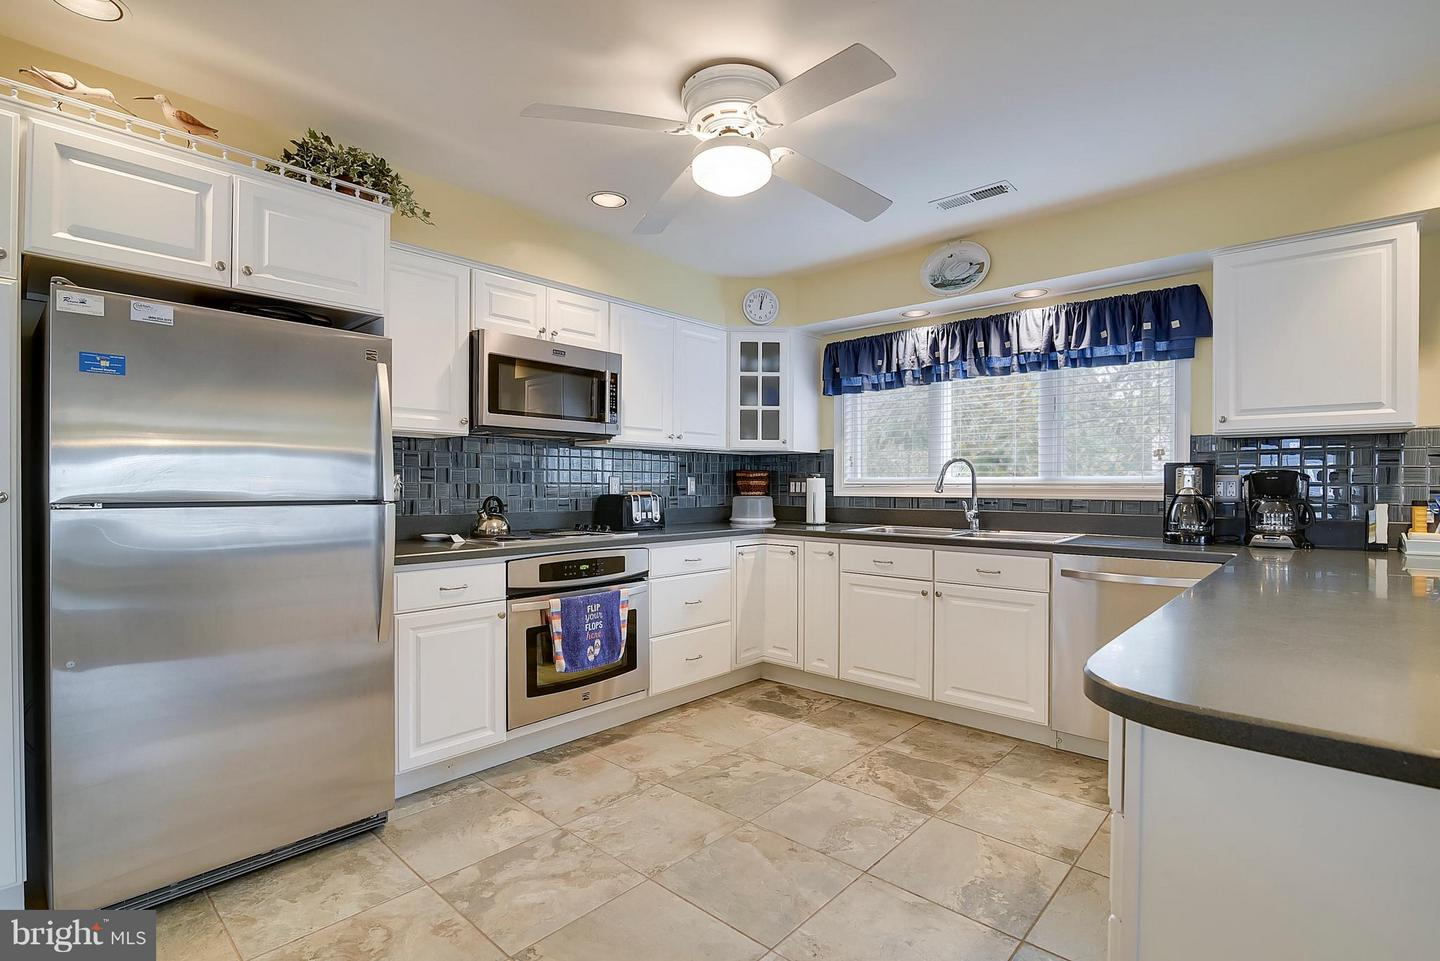 1002344128-300986984749-2018-11-07-14-16-58 39634 Seatrout Cir | North Bethany, DE Real Estate For Sale | MLS# 1002344128  - 1st Choice Properties